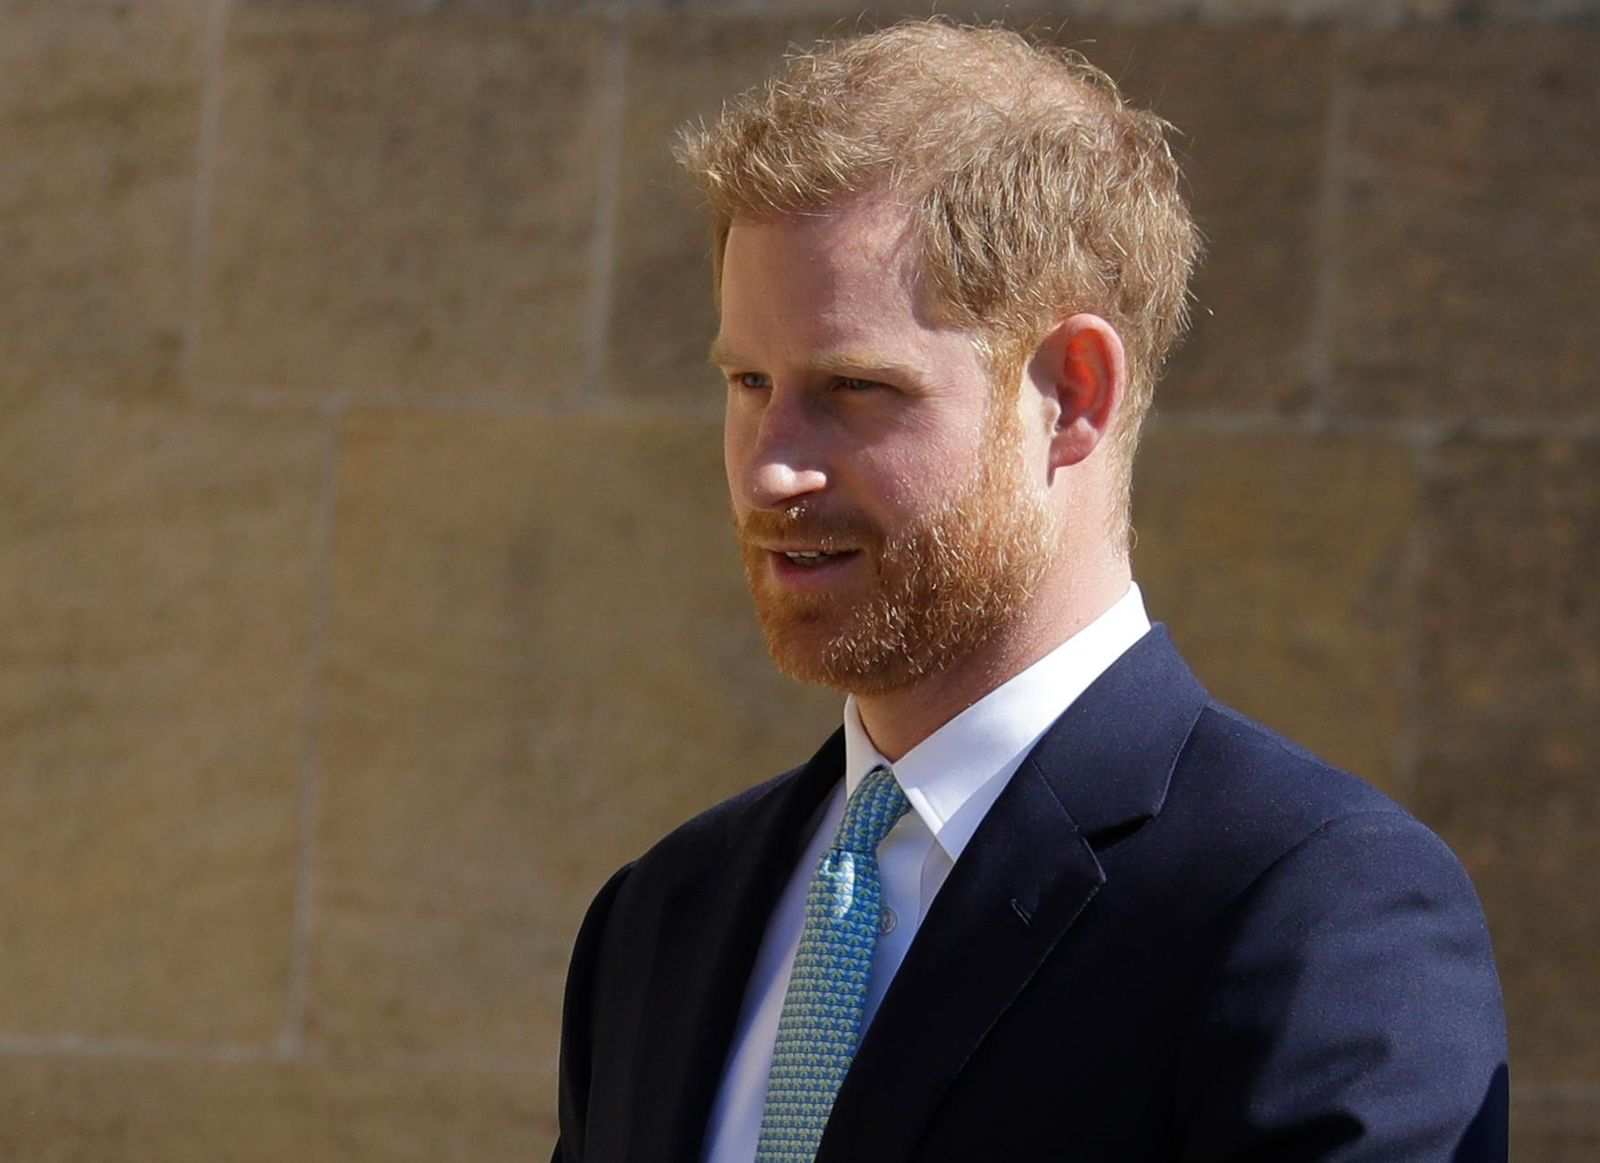 FILE - In this Sunday, April 21, 2019 file photo, Britain's Prince Harry arrives to attend the Easter Mattins Service at St. George's Chapel, at Windsor Castle in England. (AP Photo/Kirsty Wigglesworth, file)